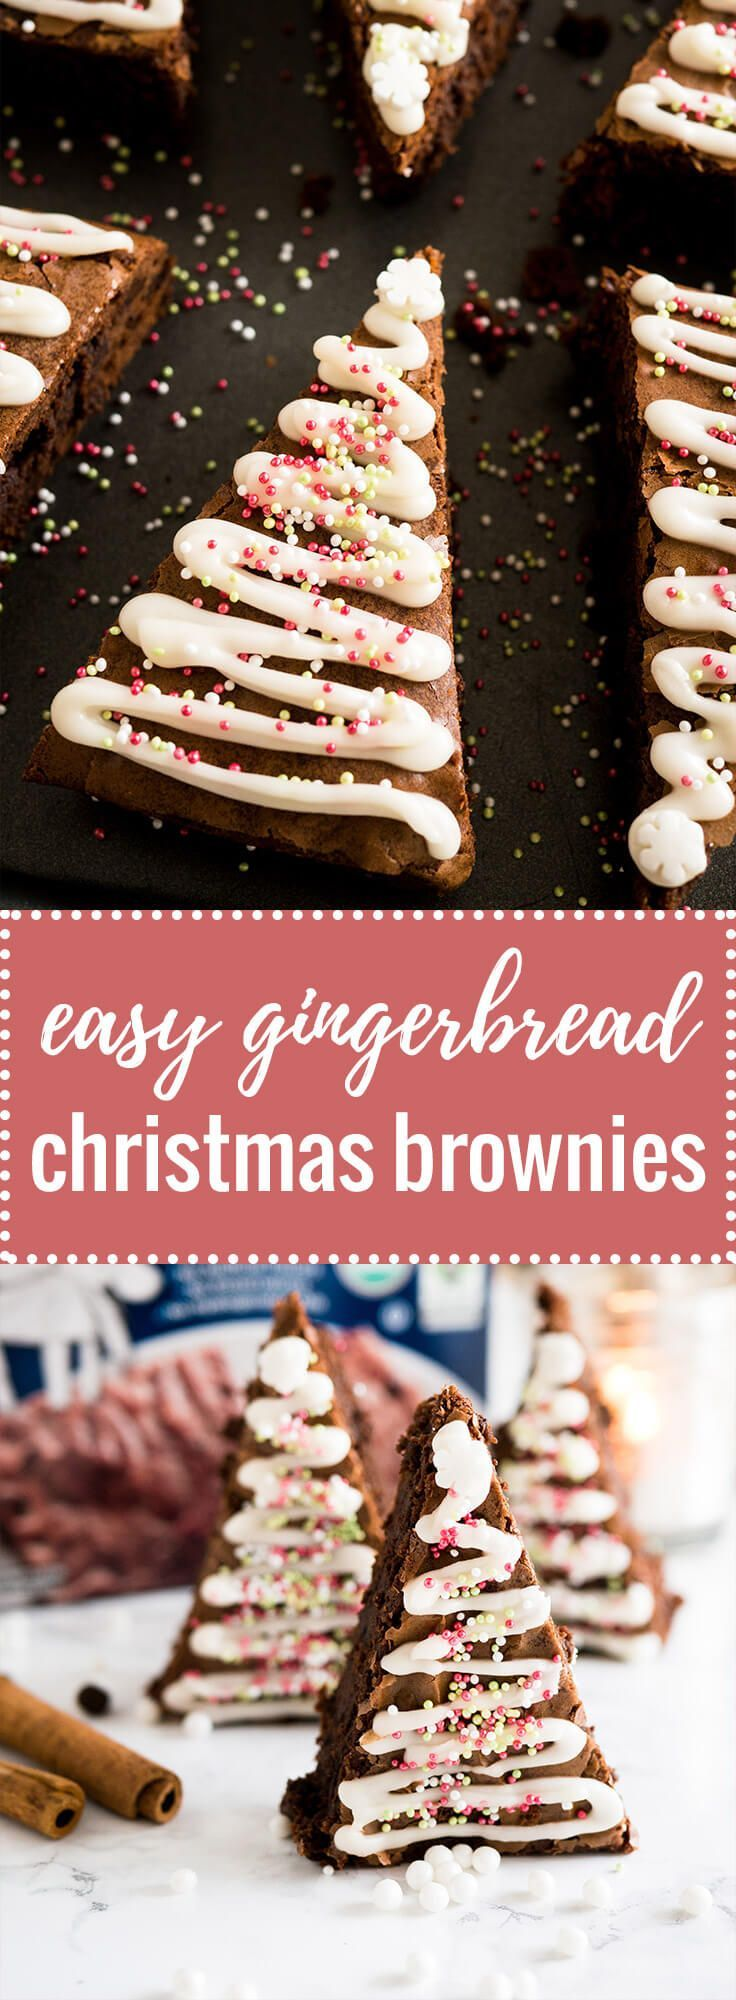 These Gingerbread Christmas Brownies take just minutes to put together! Add a seasonal spin to classic fudge brownies with an easy semi-from-scratch recipe for Christmas Tree Brownies. @immaculatebakes #immaculateholidays #immaculatebaking #ad